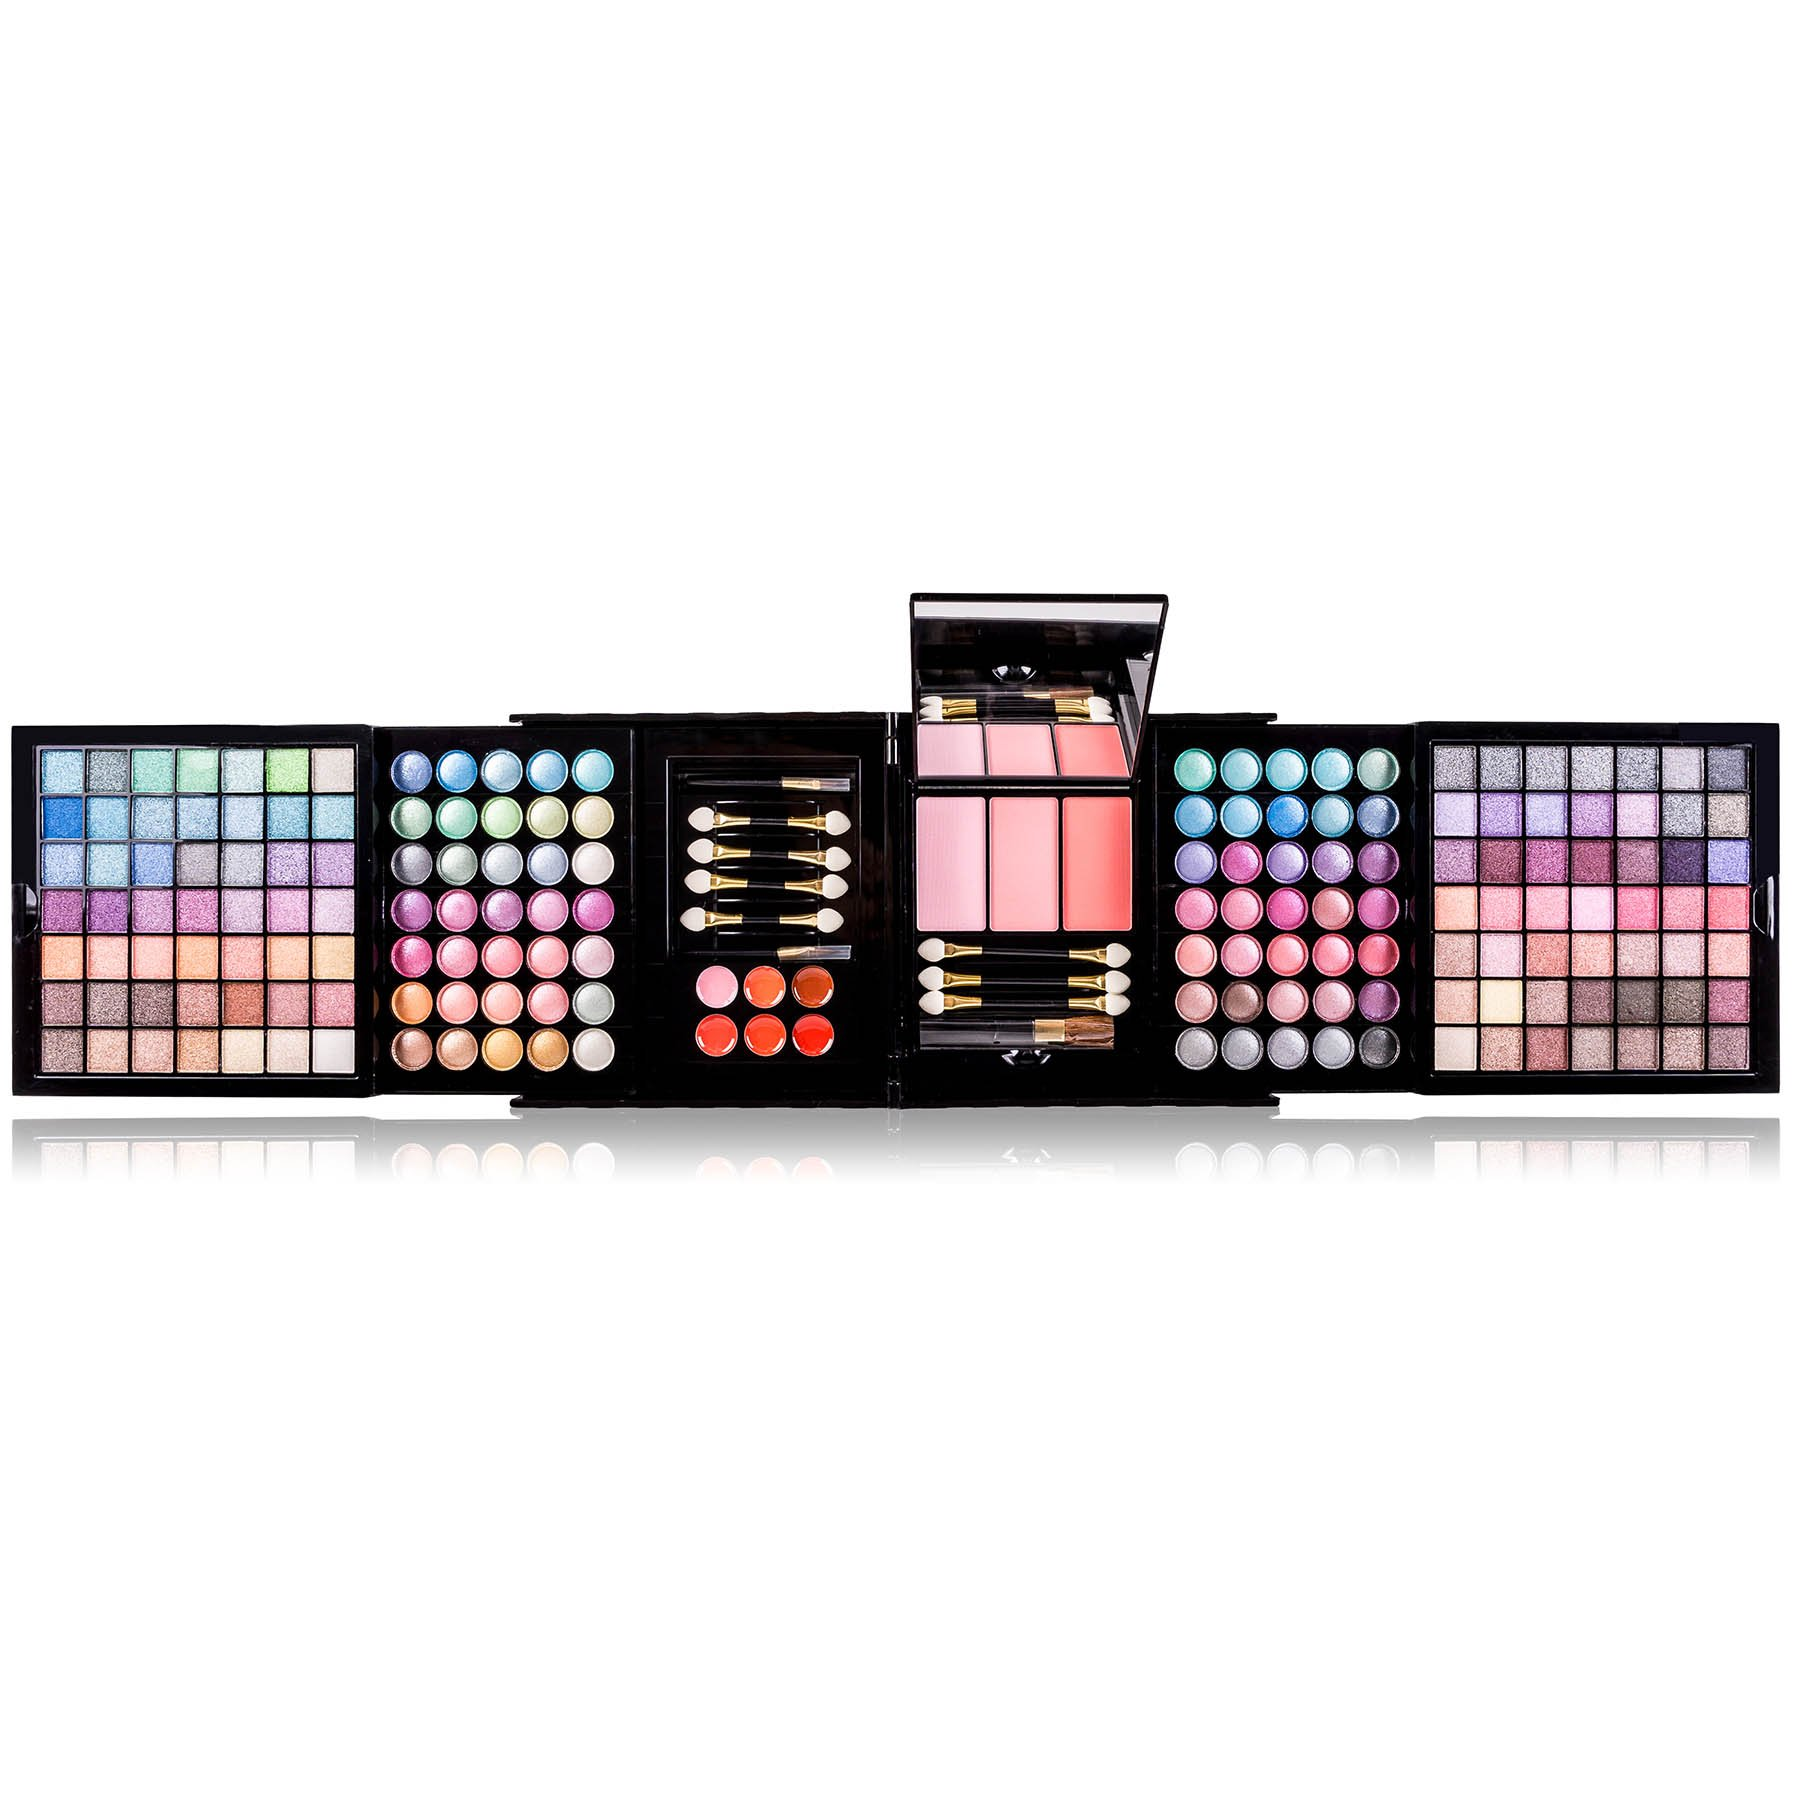 SHANY All In One Harmony Makeup Kit - Ultimate Color Combination - New Edition by SHANY Cosmetics (Image #3)